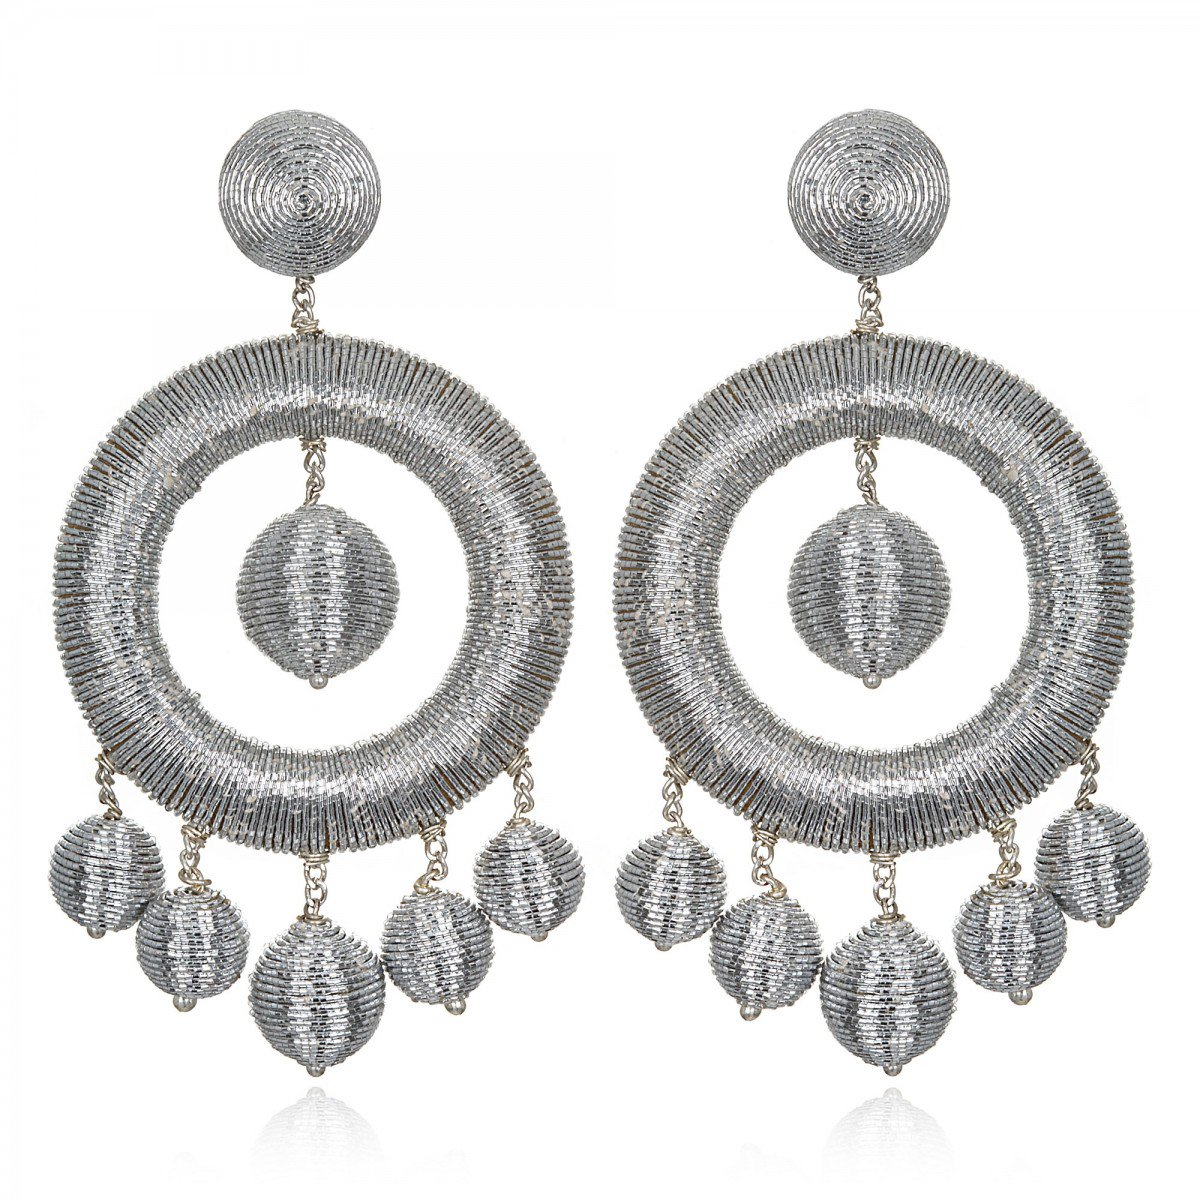 Silver Metallic Hoop Earrings by SUZANNA DAI